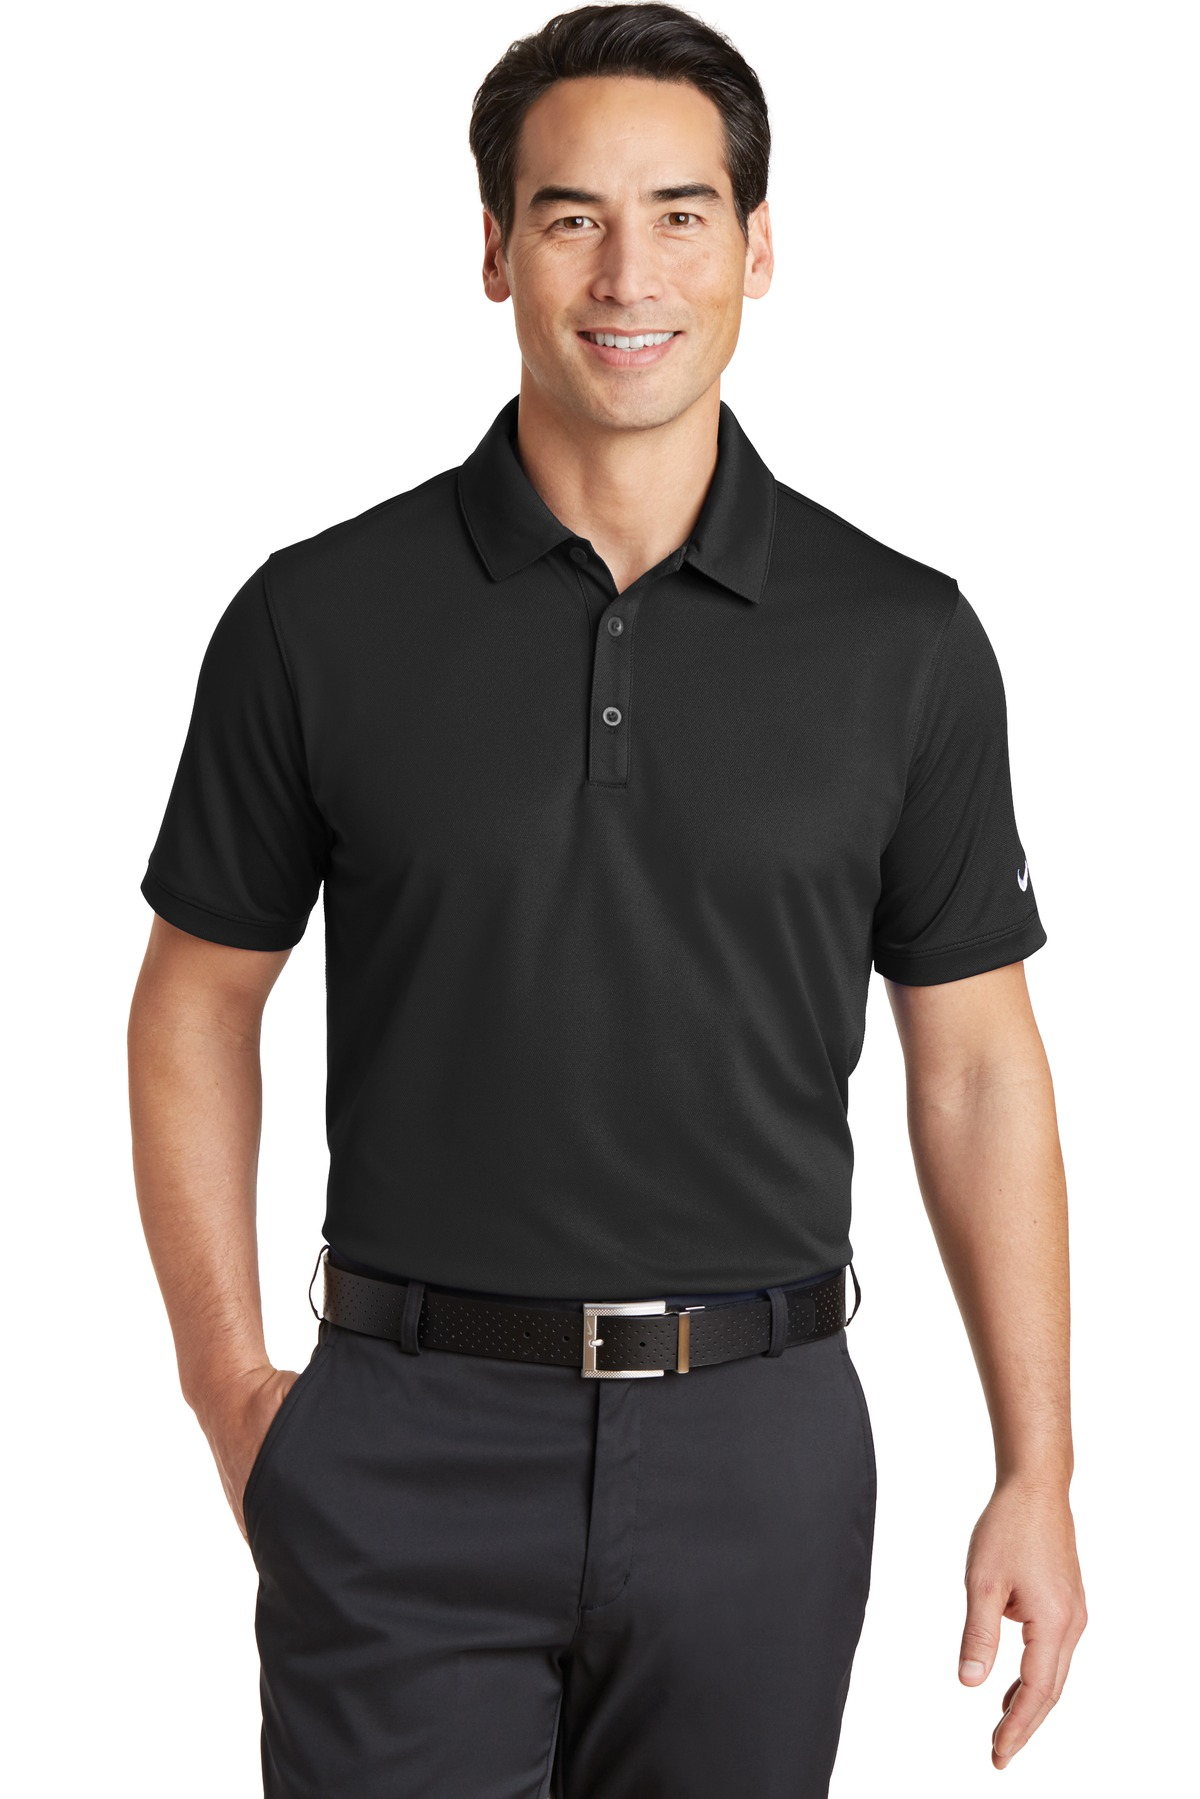 Nike Golf 746099 - Dri-FIT Solid Icon Pique Polo